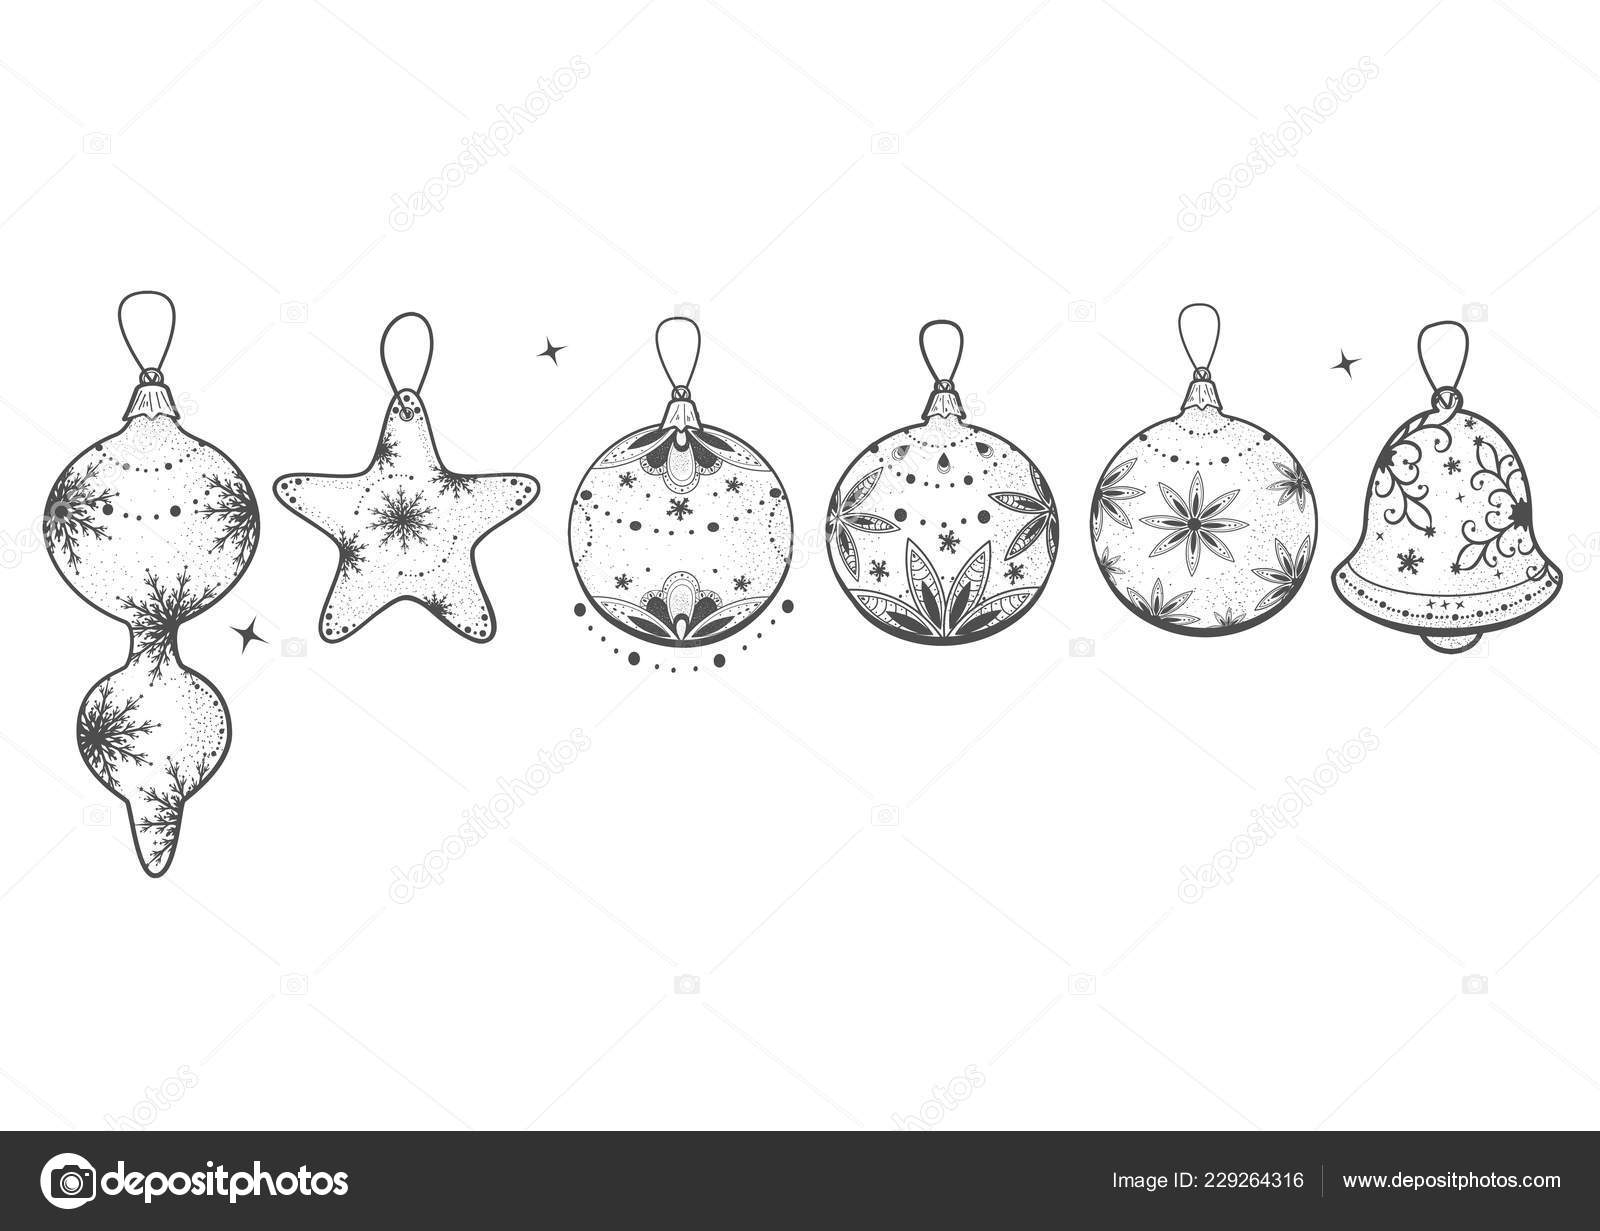 christmas ornaments drawing vector hand drawn set christmas ornaments vintage engraved style isolated stock vector c suricoma 229264316 https depositphotos com 229264316 stock illustration vector hand drawn set christmas html